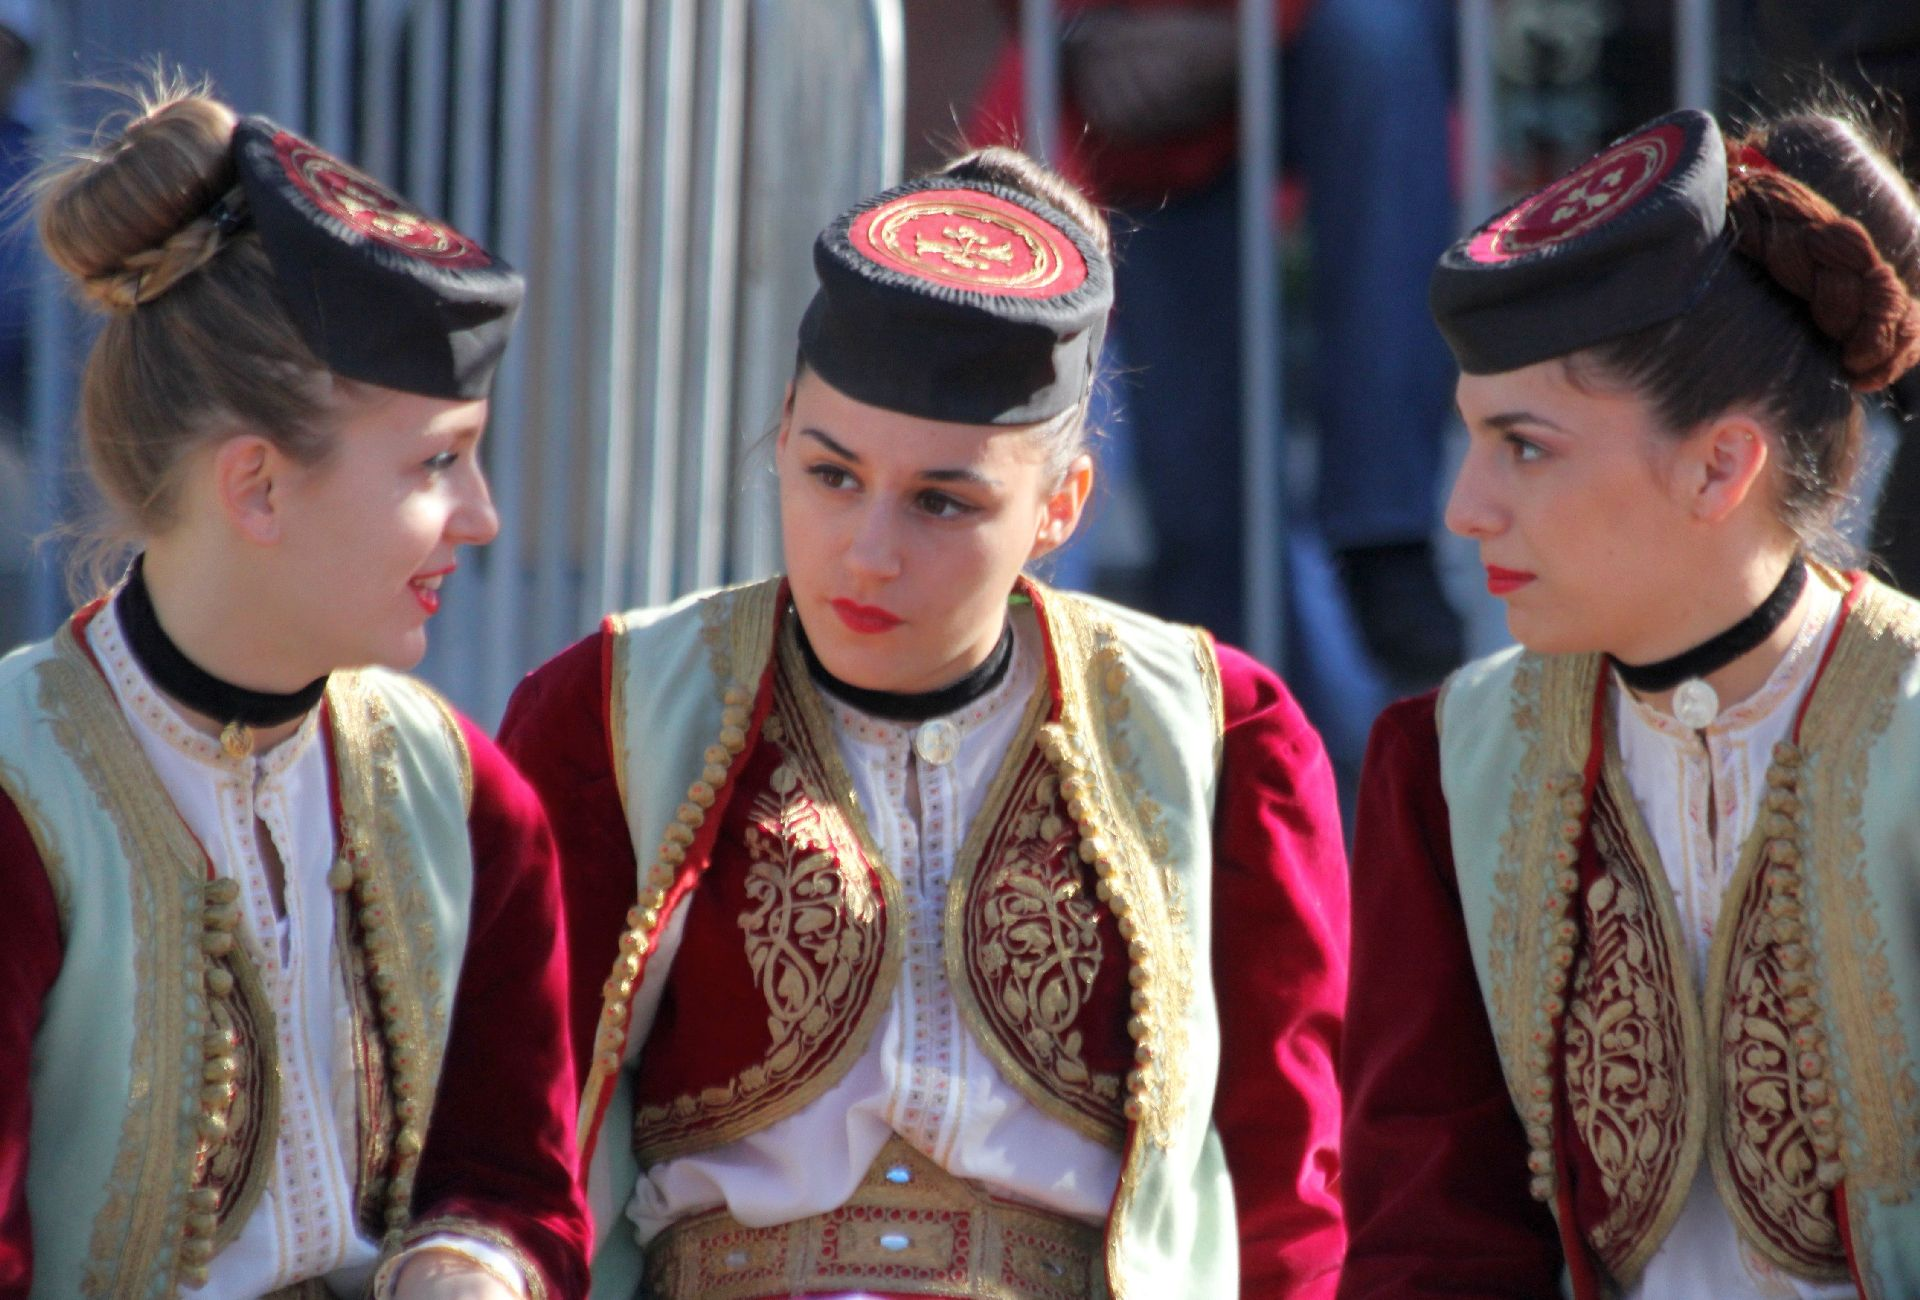 The position of Montenegrin women rapidly changed after World War II ...